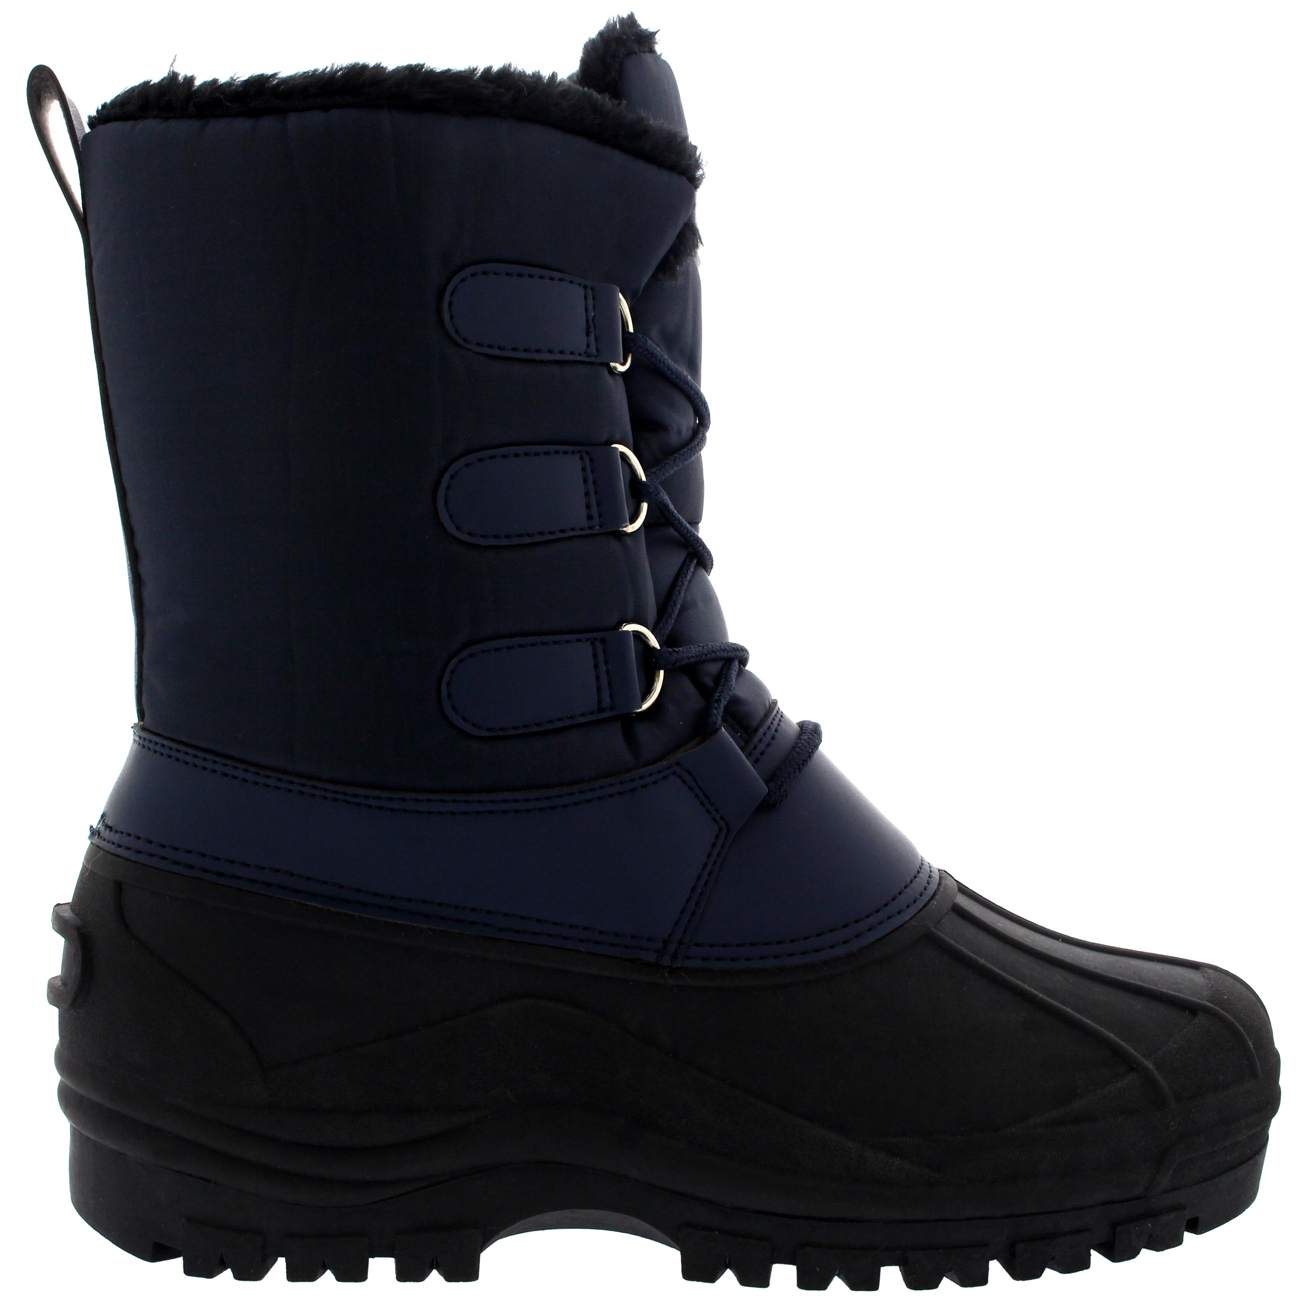 Muck Winter Boots For Men | Santa Barbara Institute for ...